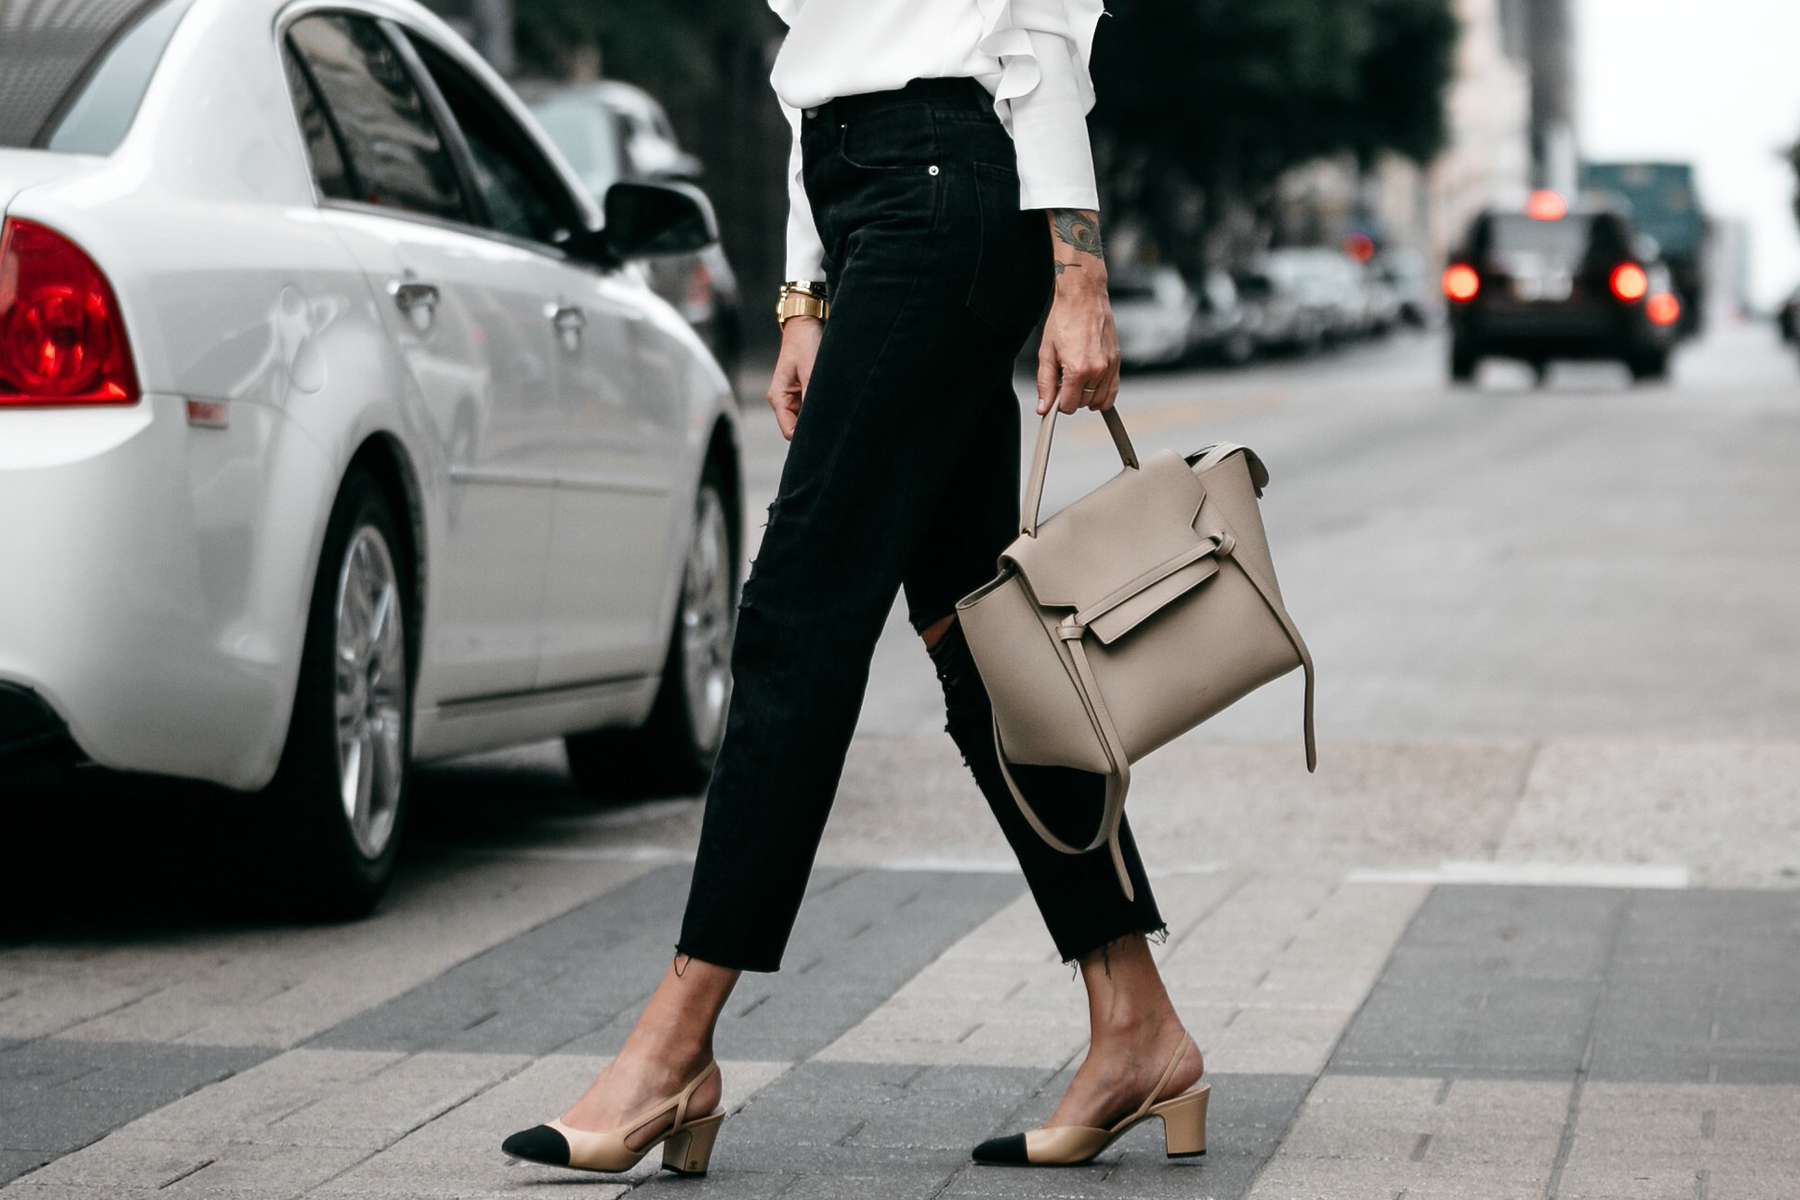 Frame Black Ripped Boyfriend Jeans Celine Belt Bag Chanel Slingbacks Fashion Jackson Dallas Blogger Fashion Blogger Street Style